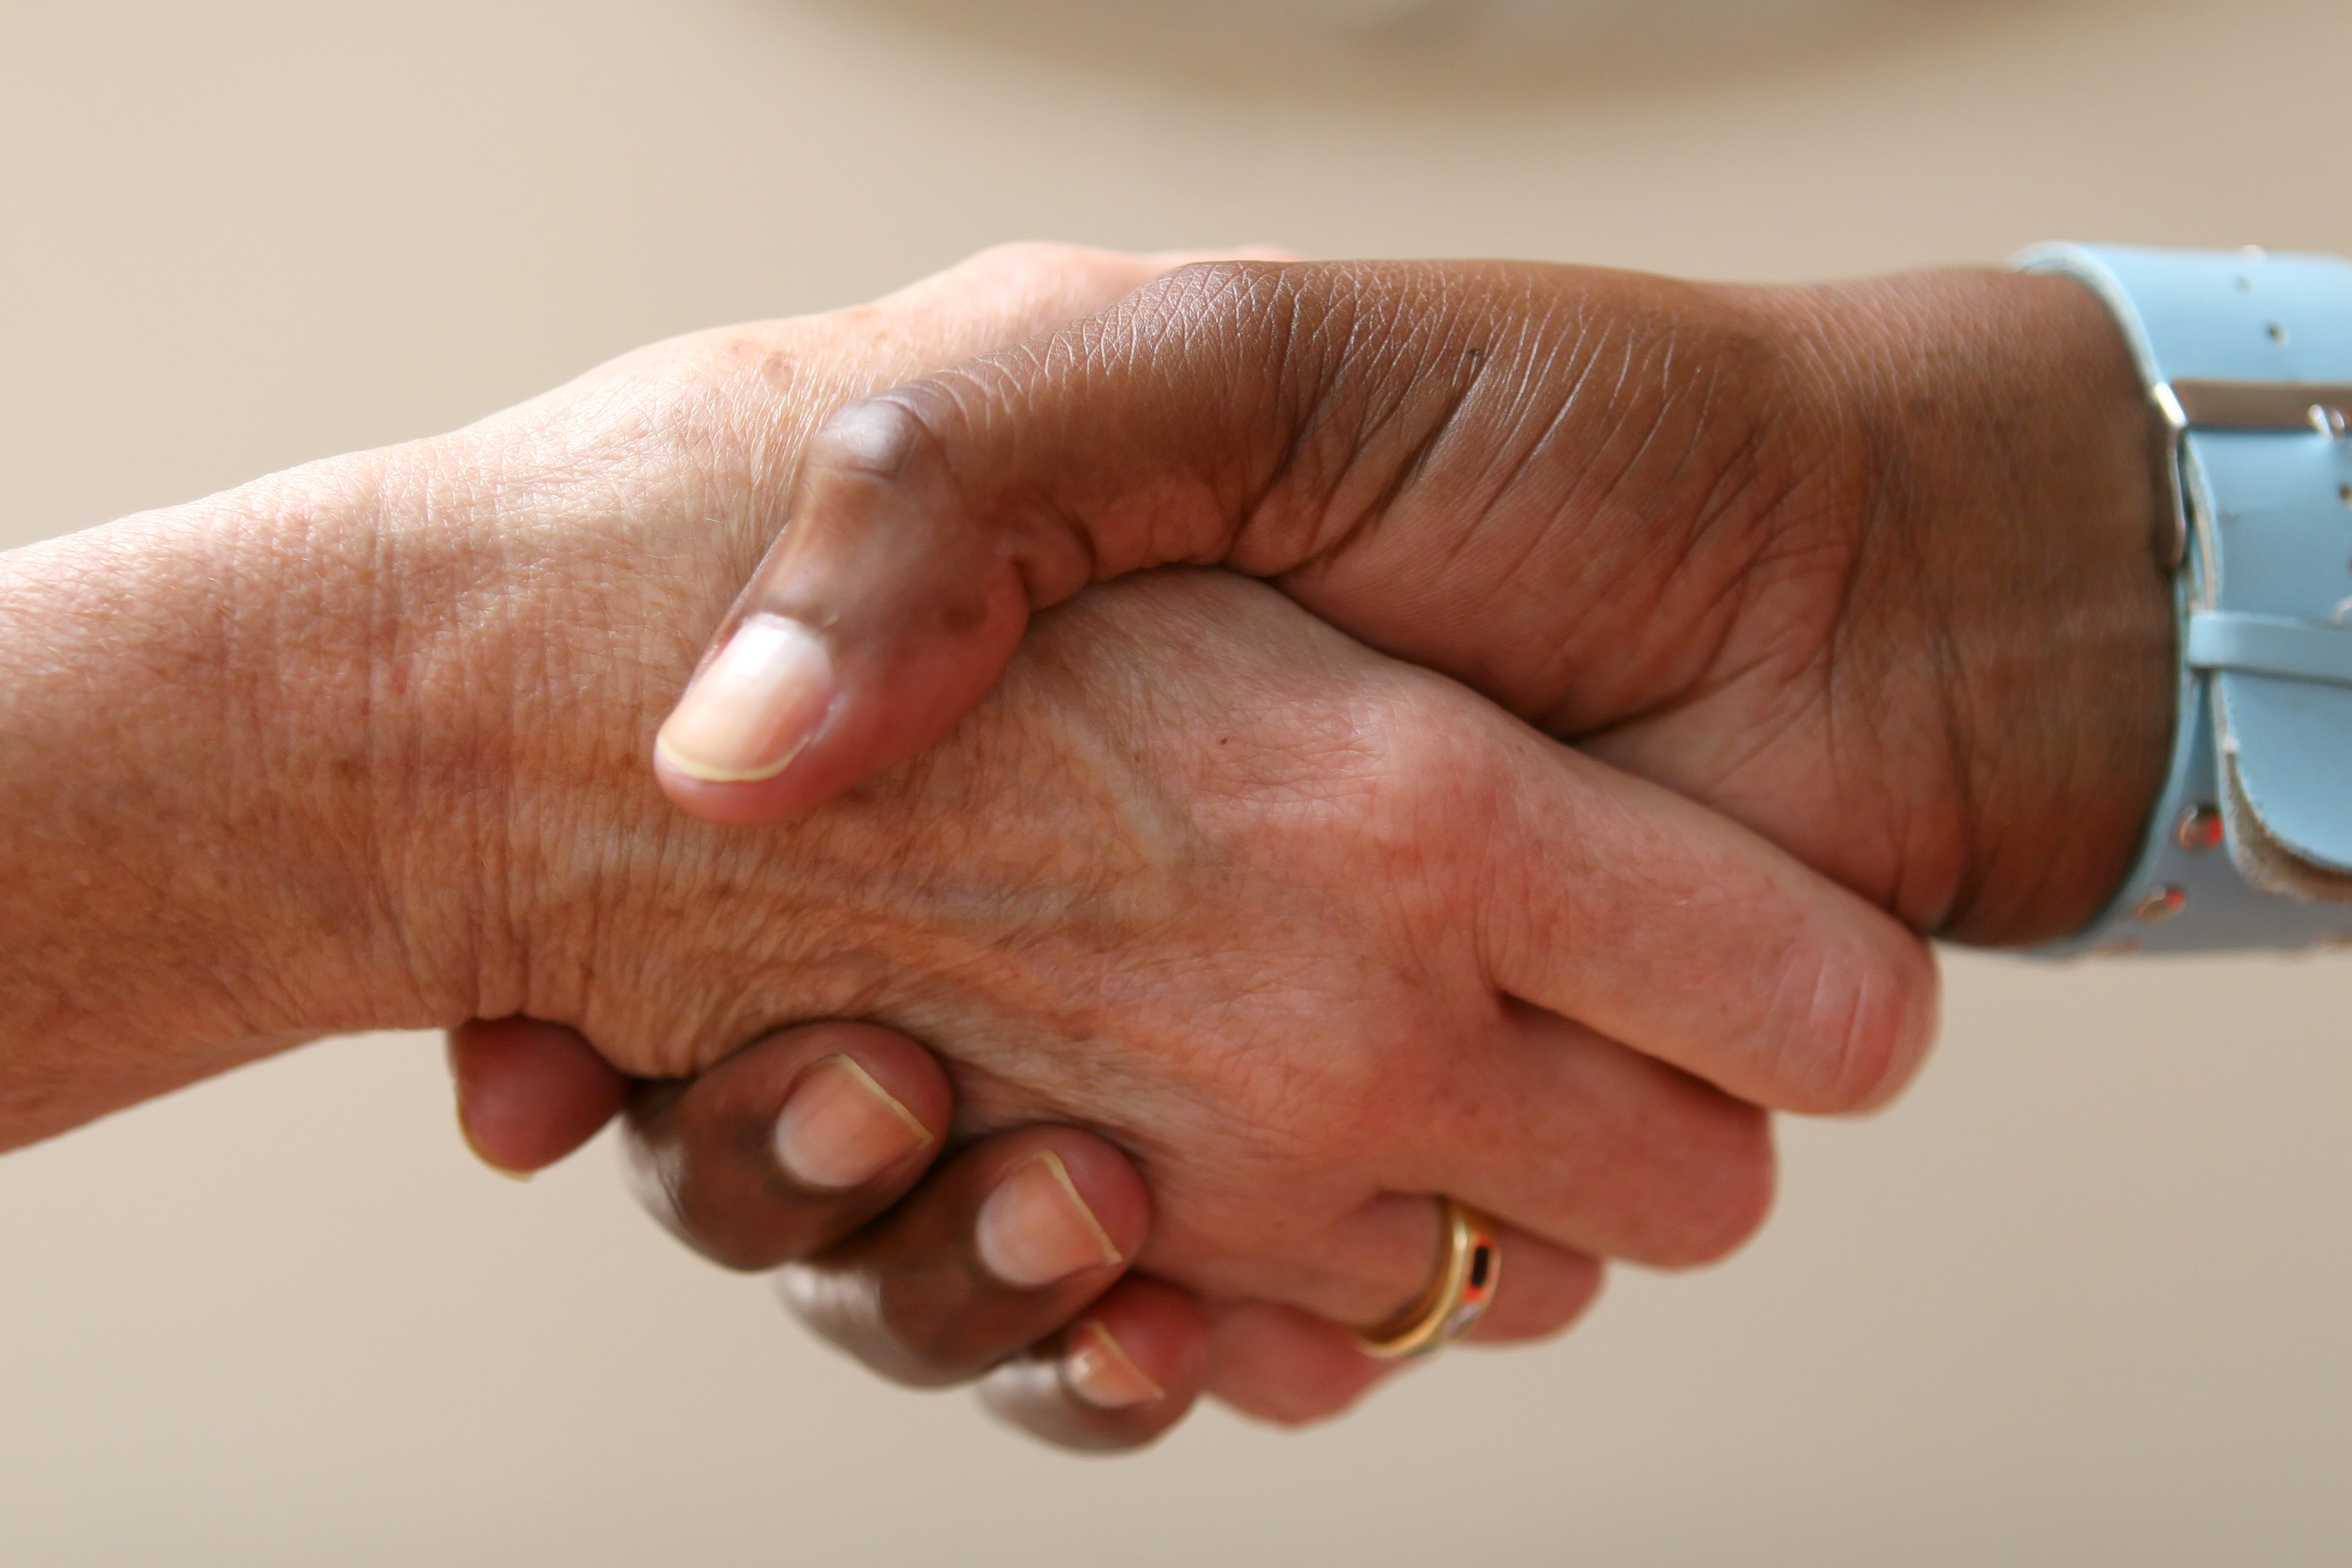 Is an Oral or Handshake Agreement Ever Good Enough?